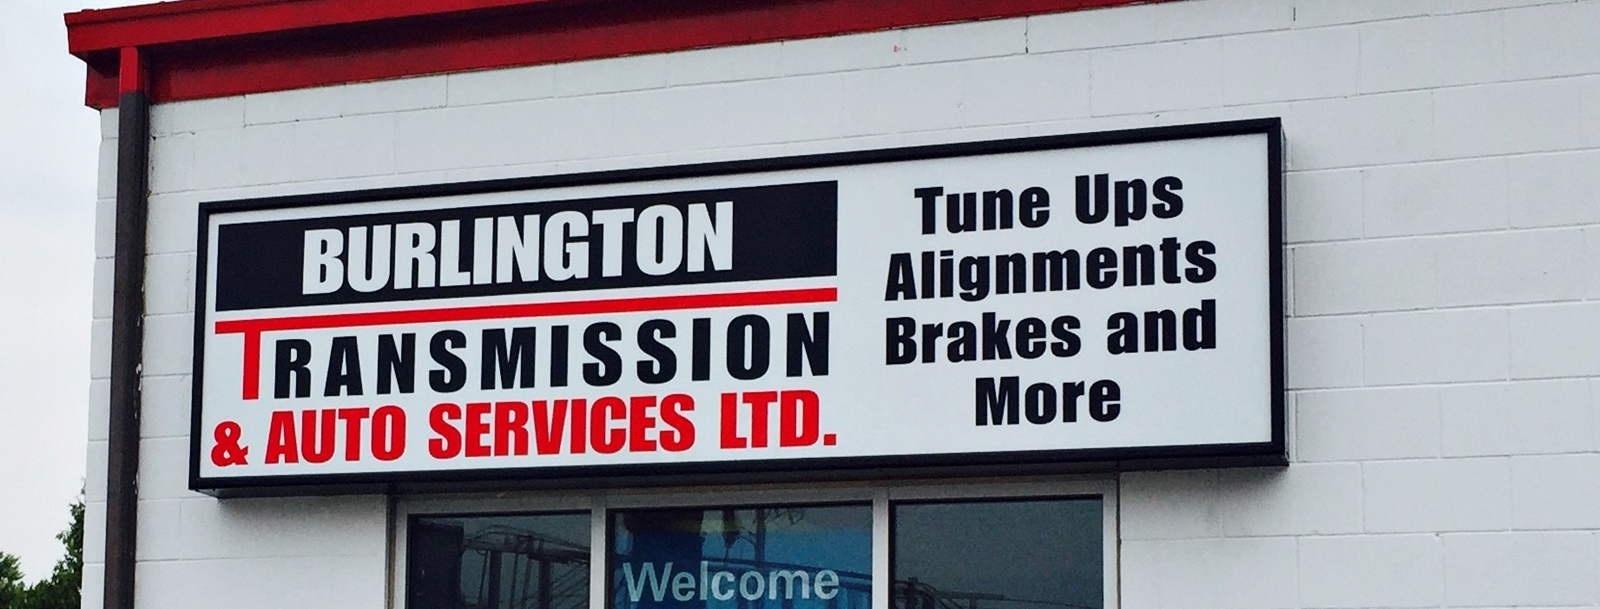 Burlington Transmission installed sign